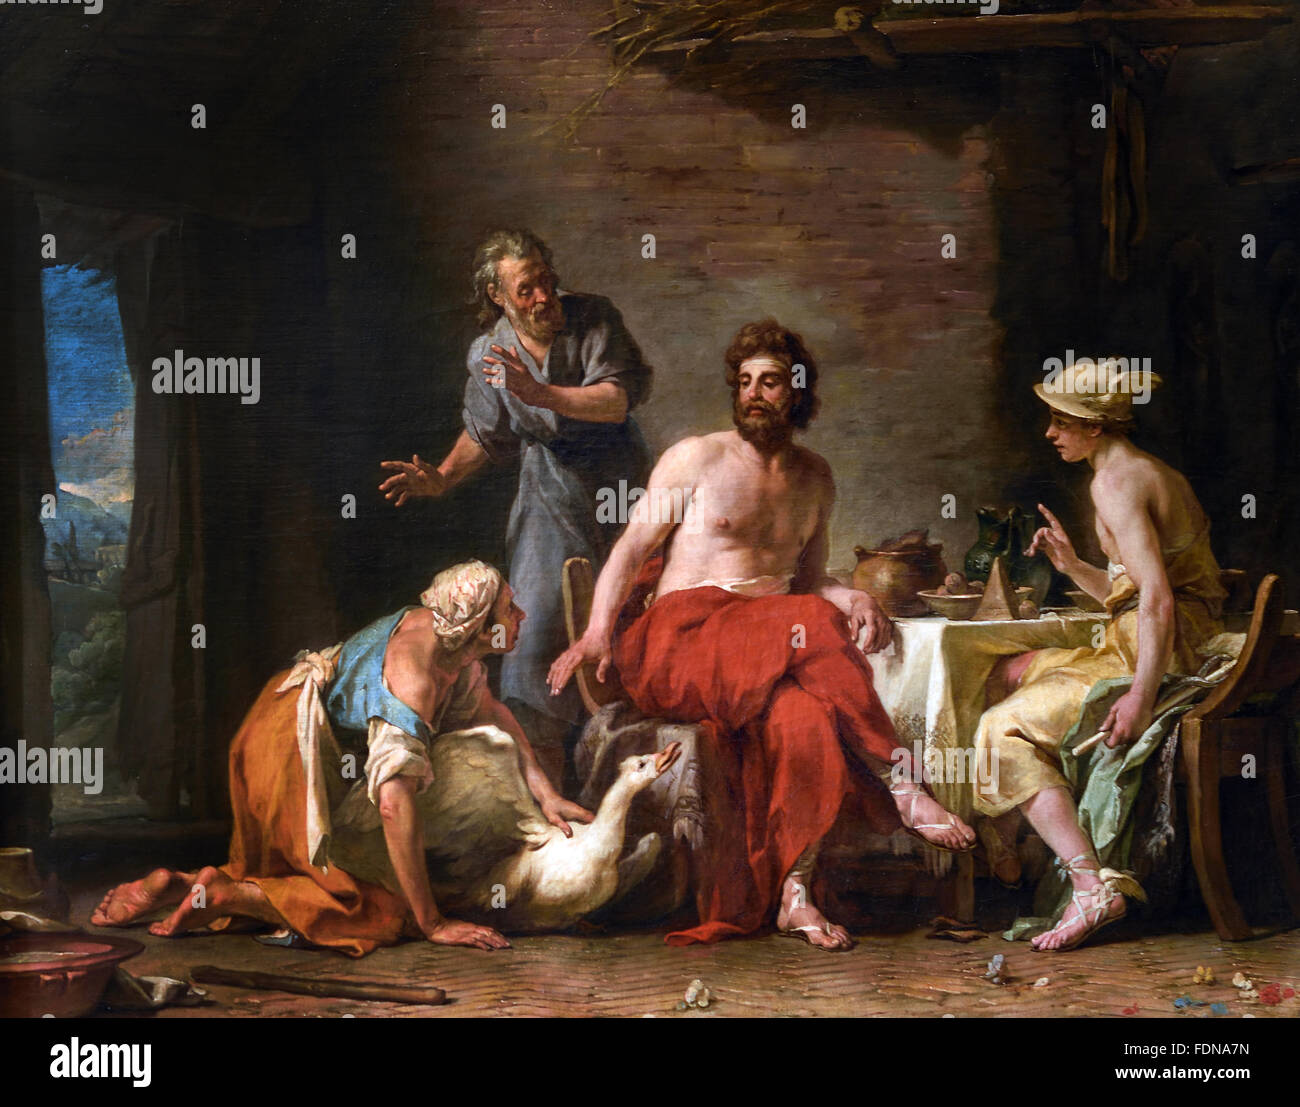 Philemon And Baucis Stock Photos & Philemon And Baucis ...